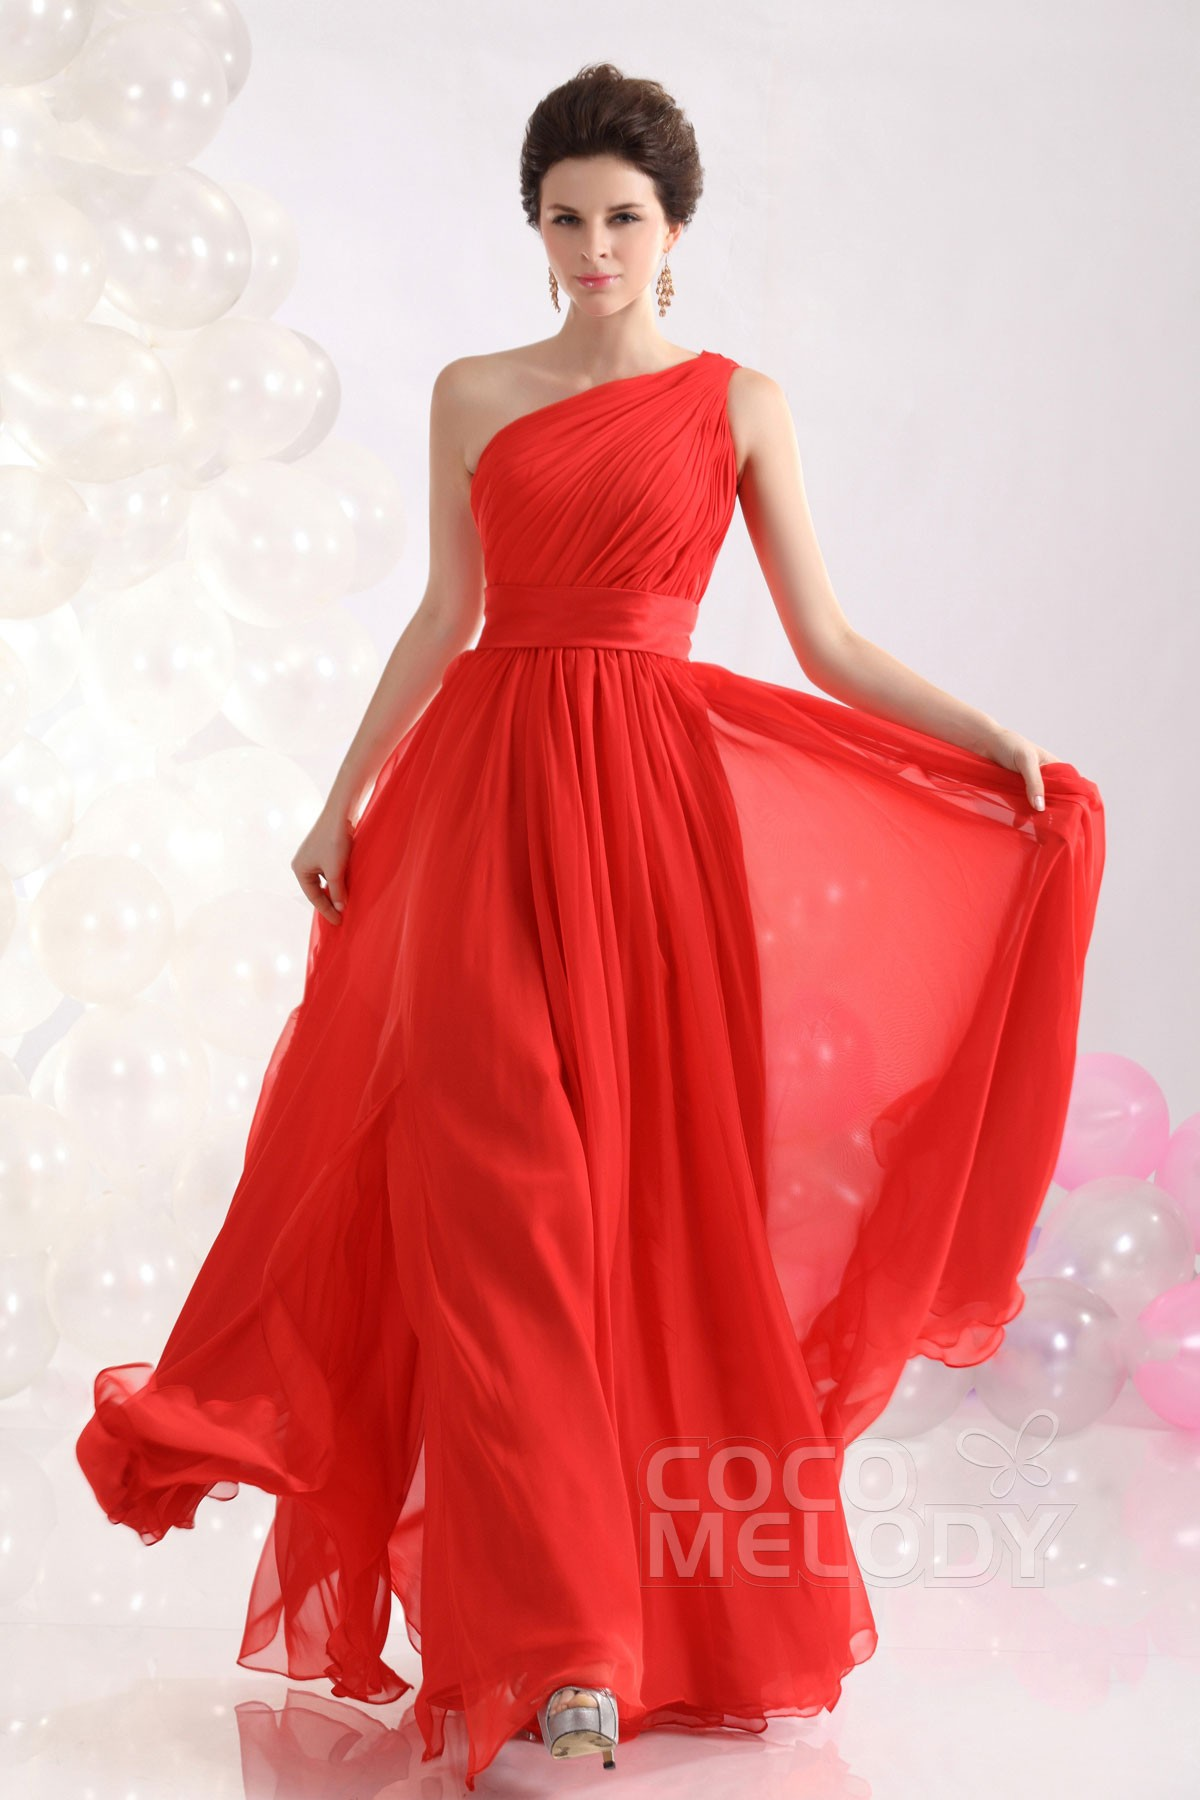 Clic Sheath Column One Shoulder Floor Length Chiffon Evening Dress Cozf13012